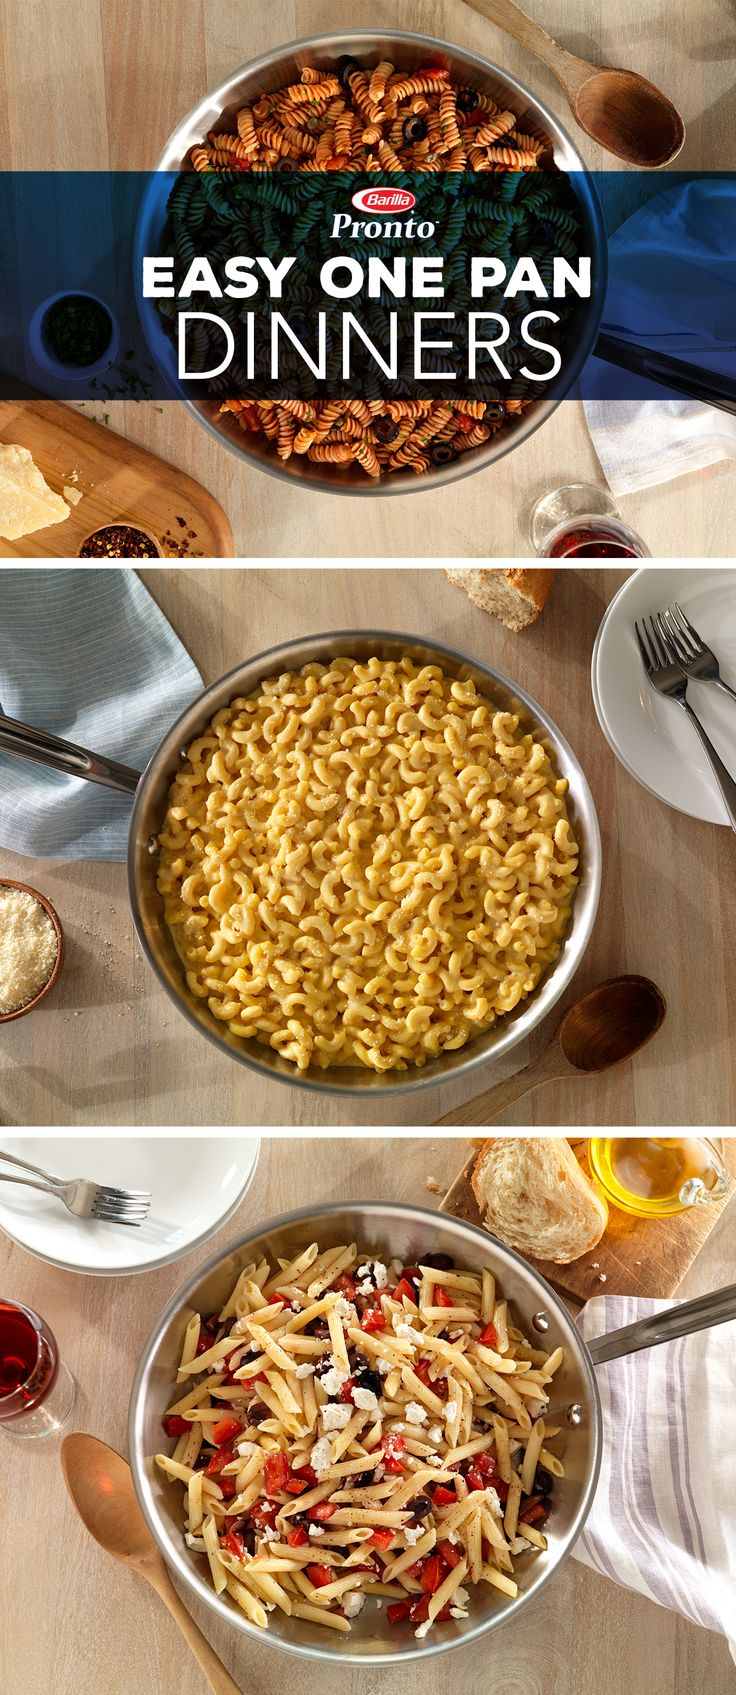 Easy all-in-one pan Pronto™ pasta dinners that don't require more work after your already long workday. Try any of these delicious and easy recipes, like Elbows Macaroni & Cheese or Greek Style Penne. Just cook, finish and serve a delicious meal in minutes. No waiting for water to boil or draining pasta required. Discover more one pan pasta recipes from Barilla today!